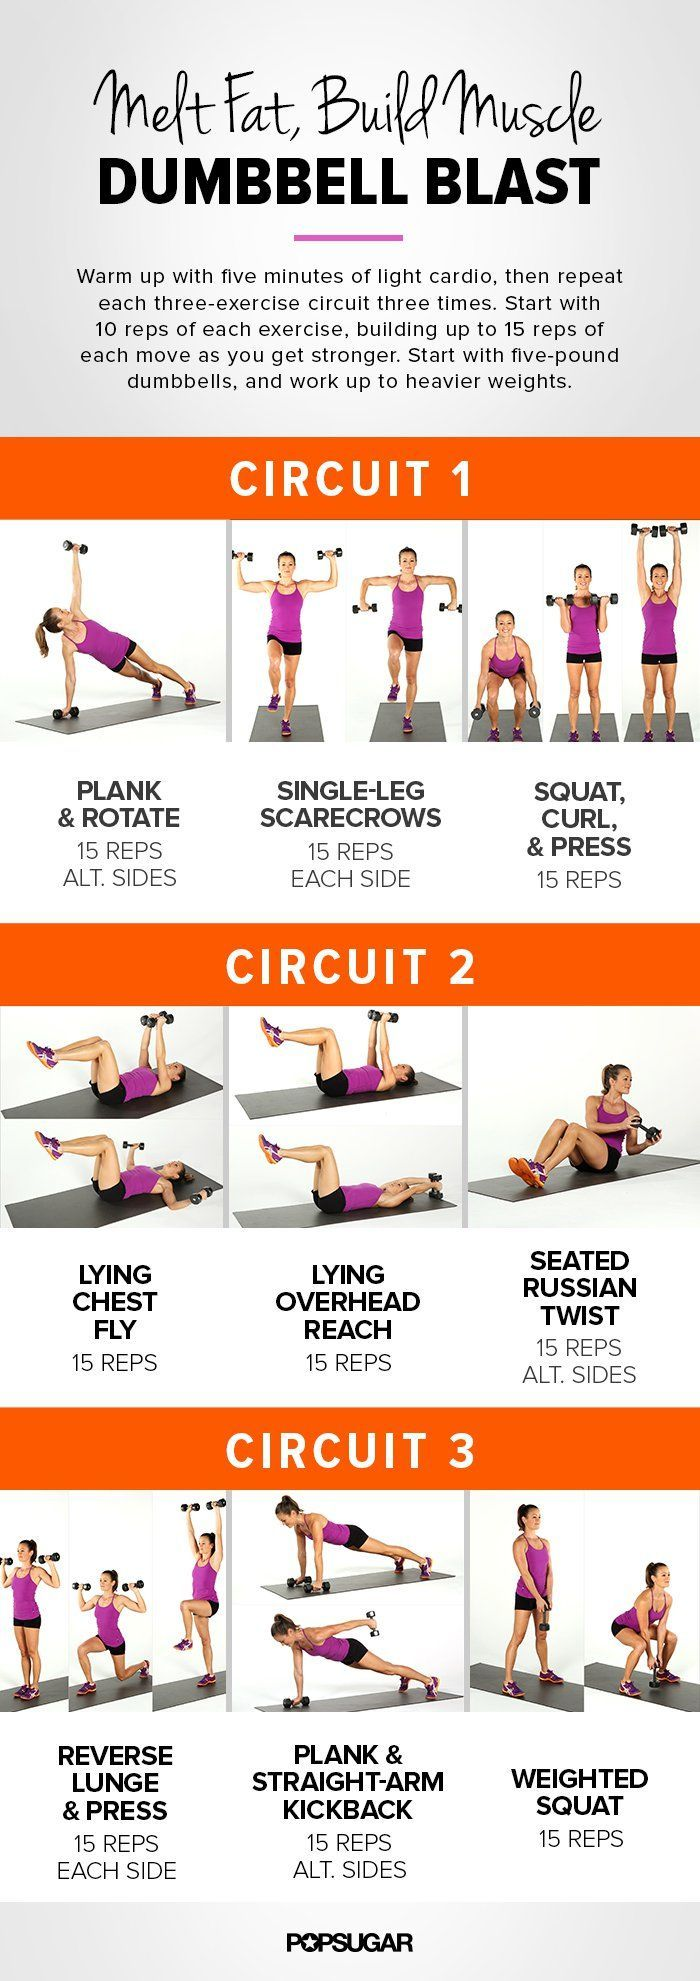 Add some dumbbells to your fitness routine and build some metabolism-boosting muscle while toning your entire body. We leave no muscle untouched with this